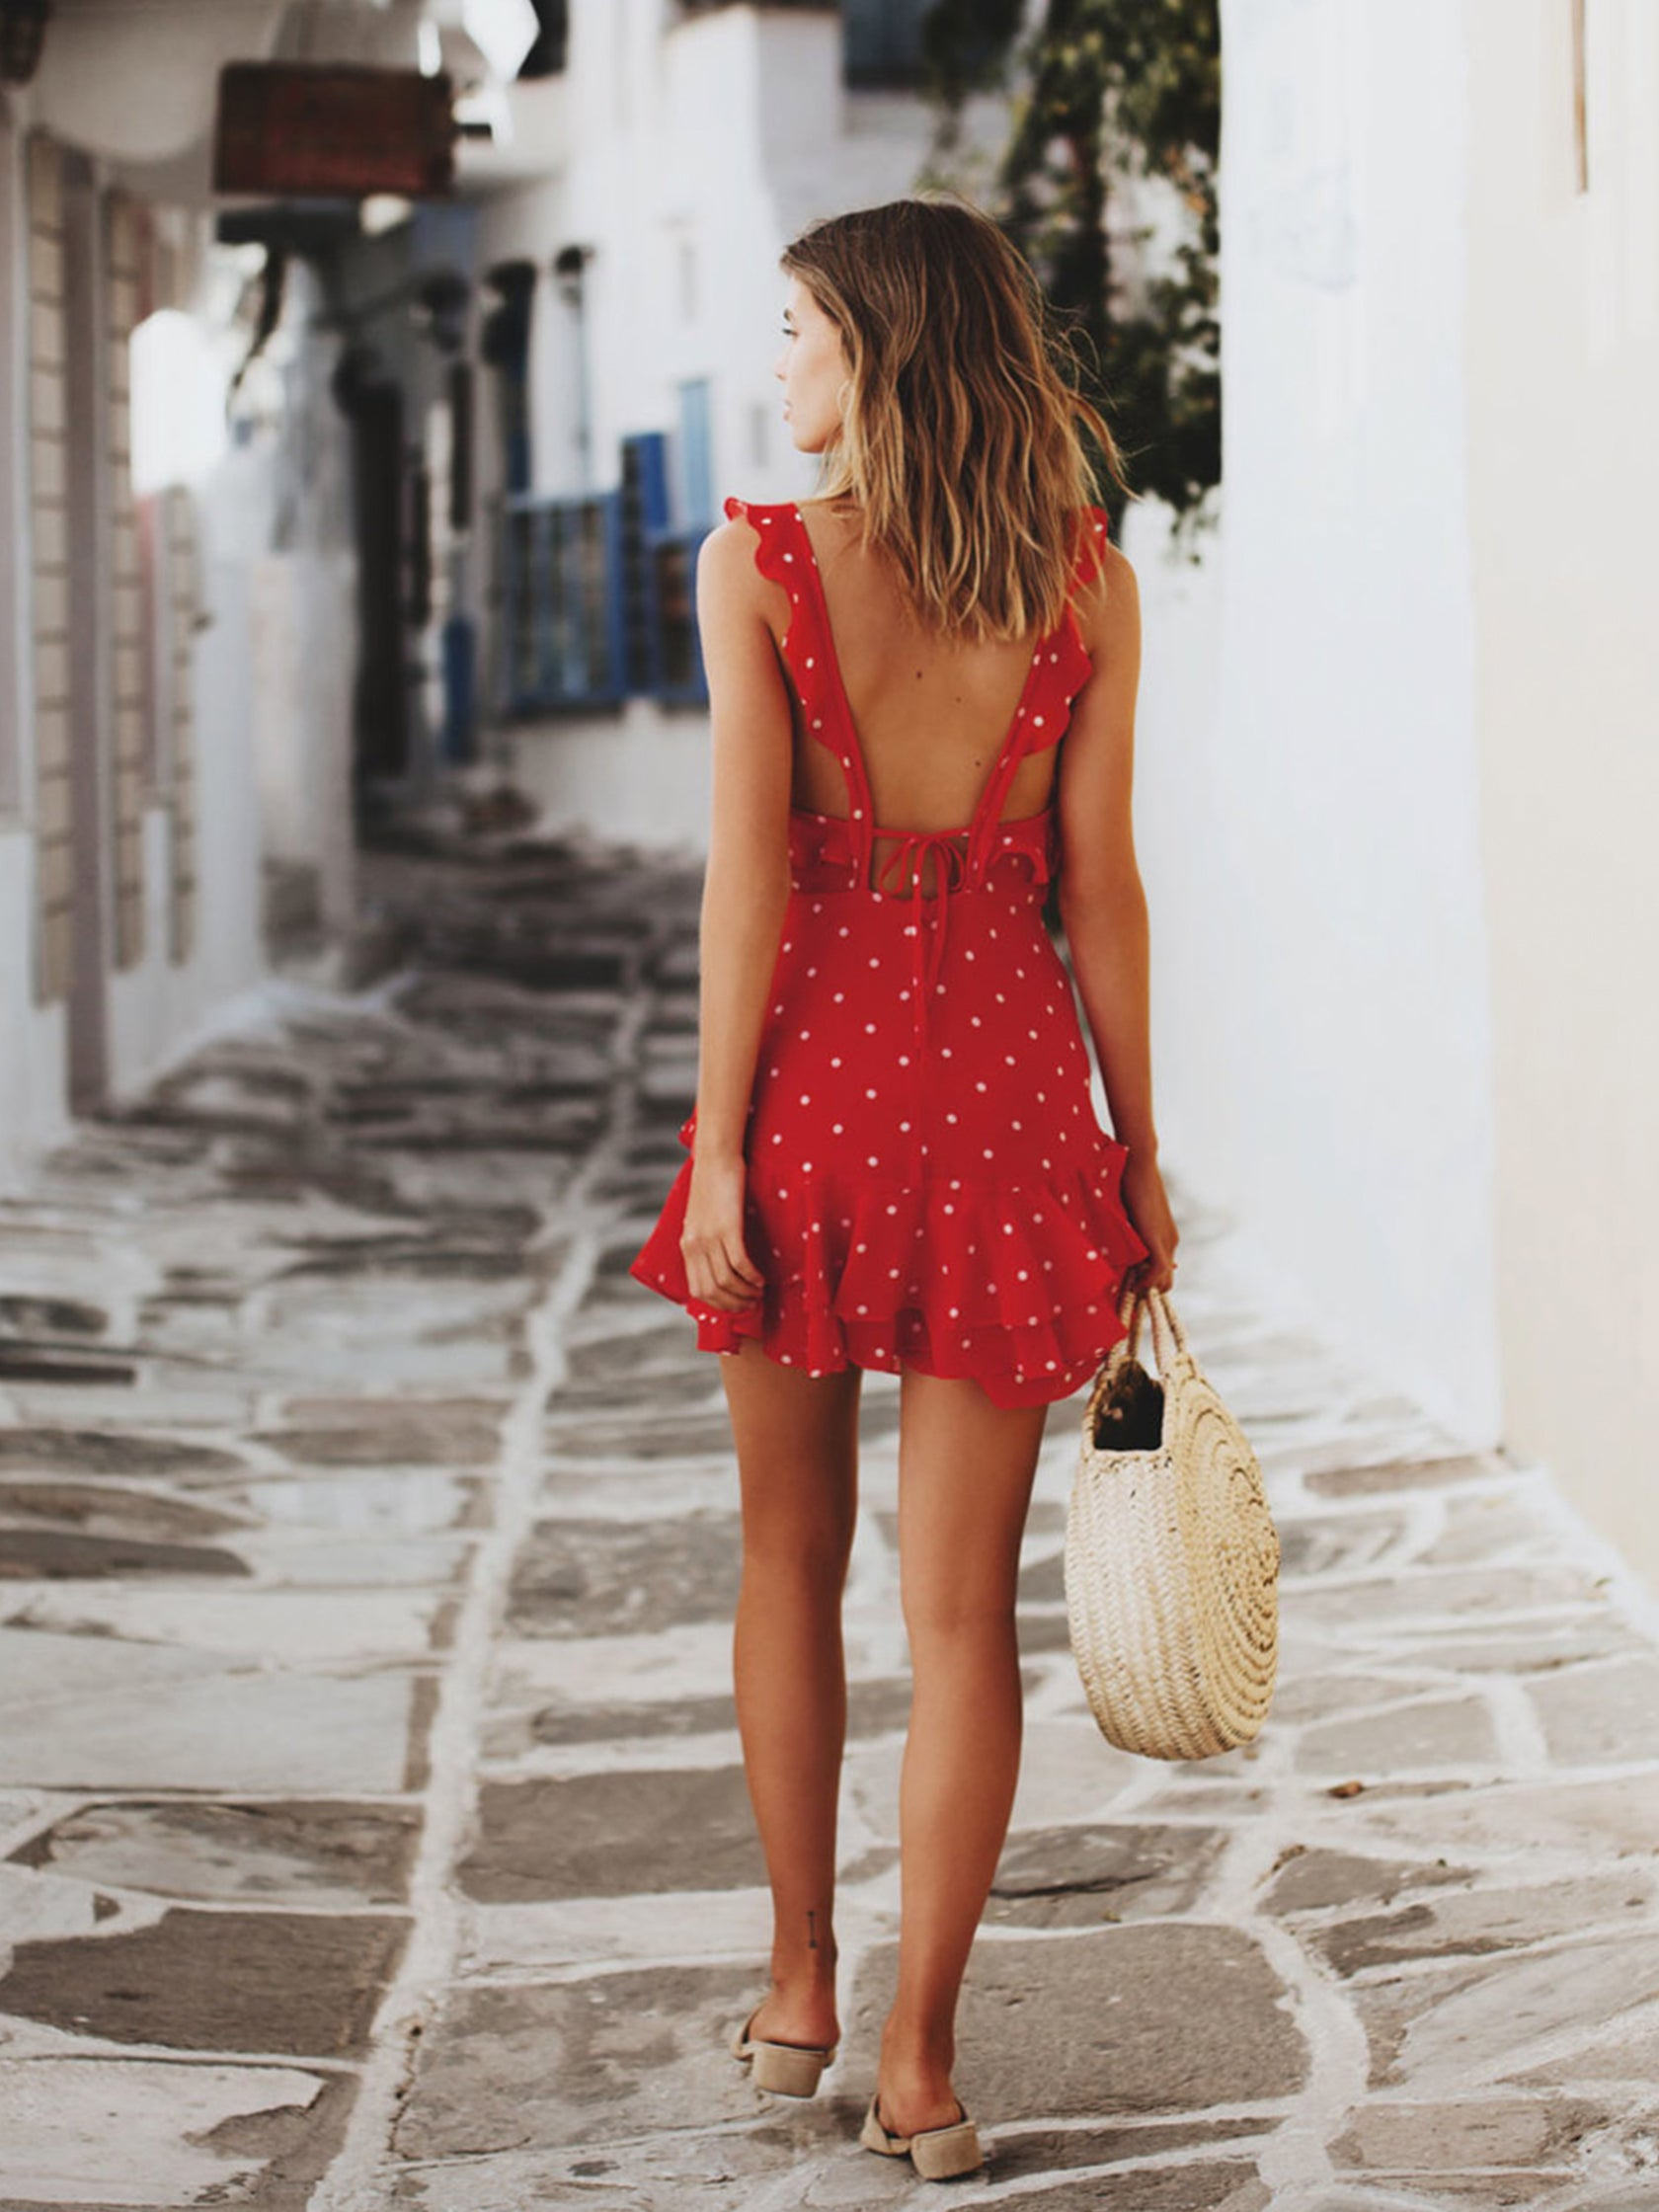 Girl outfit in a dress rental from For Love & Lemons called Analisa Polka Dot Tank Dress